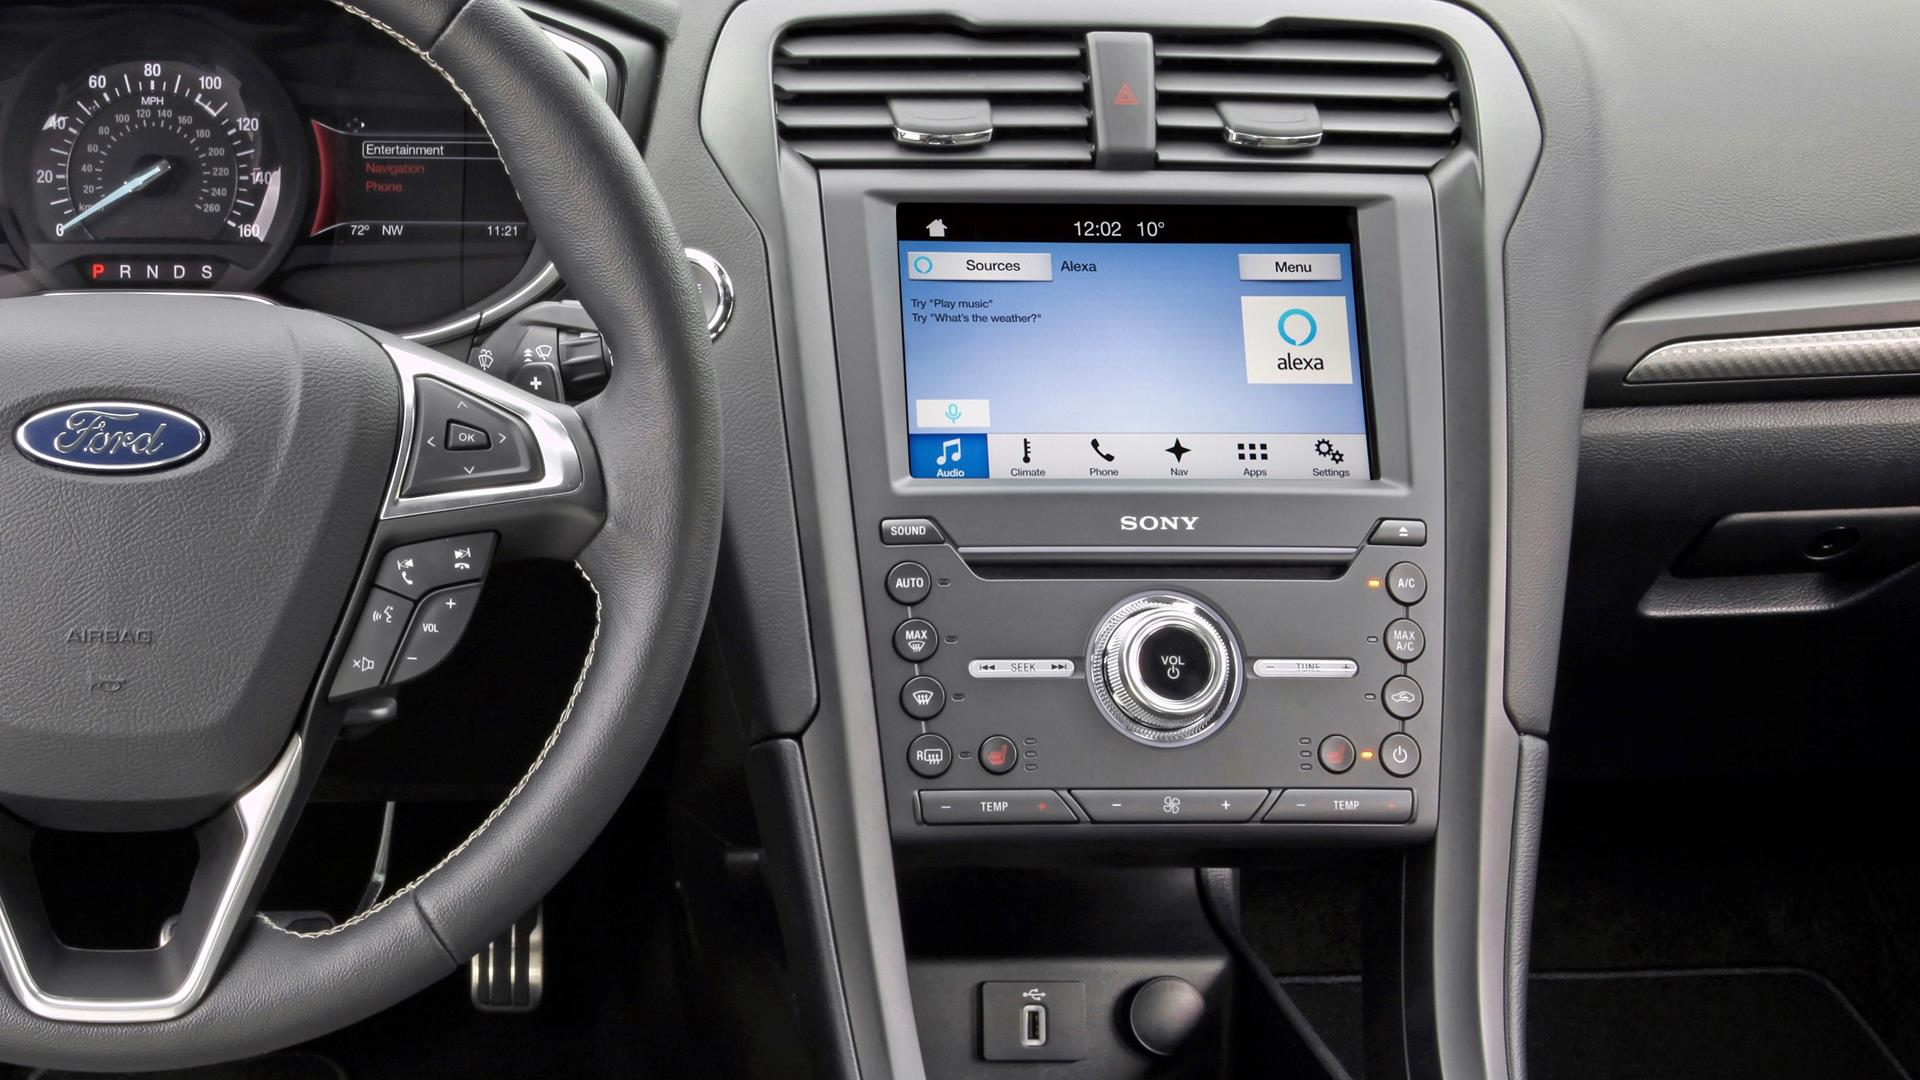 ALEXA IN THE CAR: FORD, AMAZON TO PROVIDE ACCESS TO SHOP, SEARCH AND CONTROL SMART HOME FEATURES ON THE ROAD